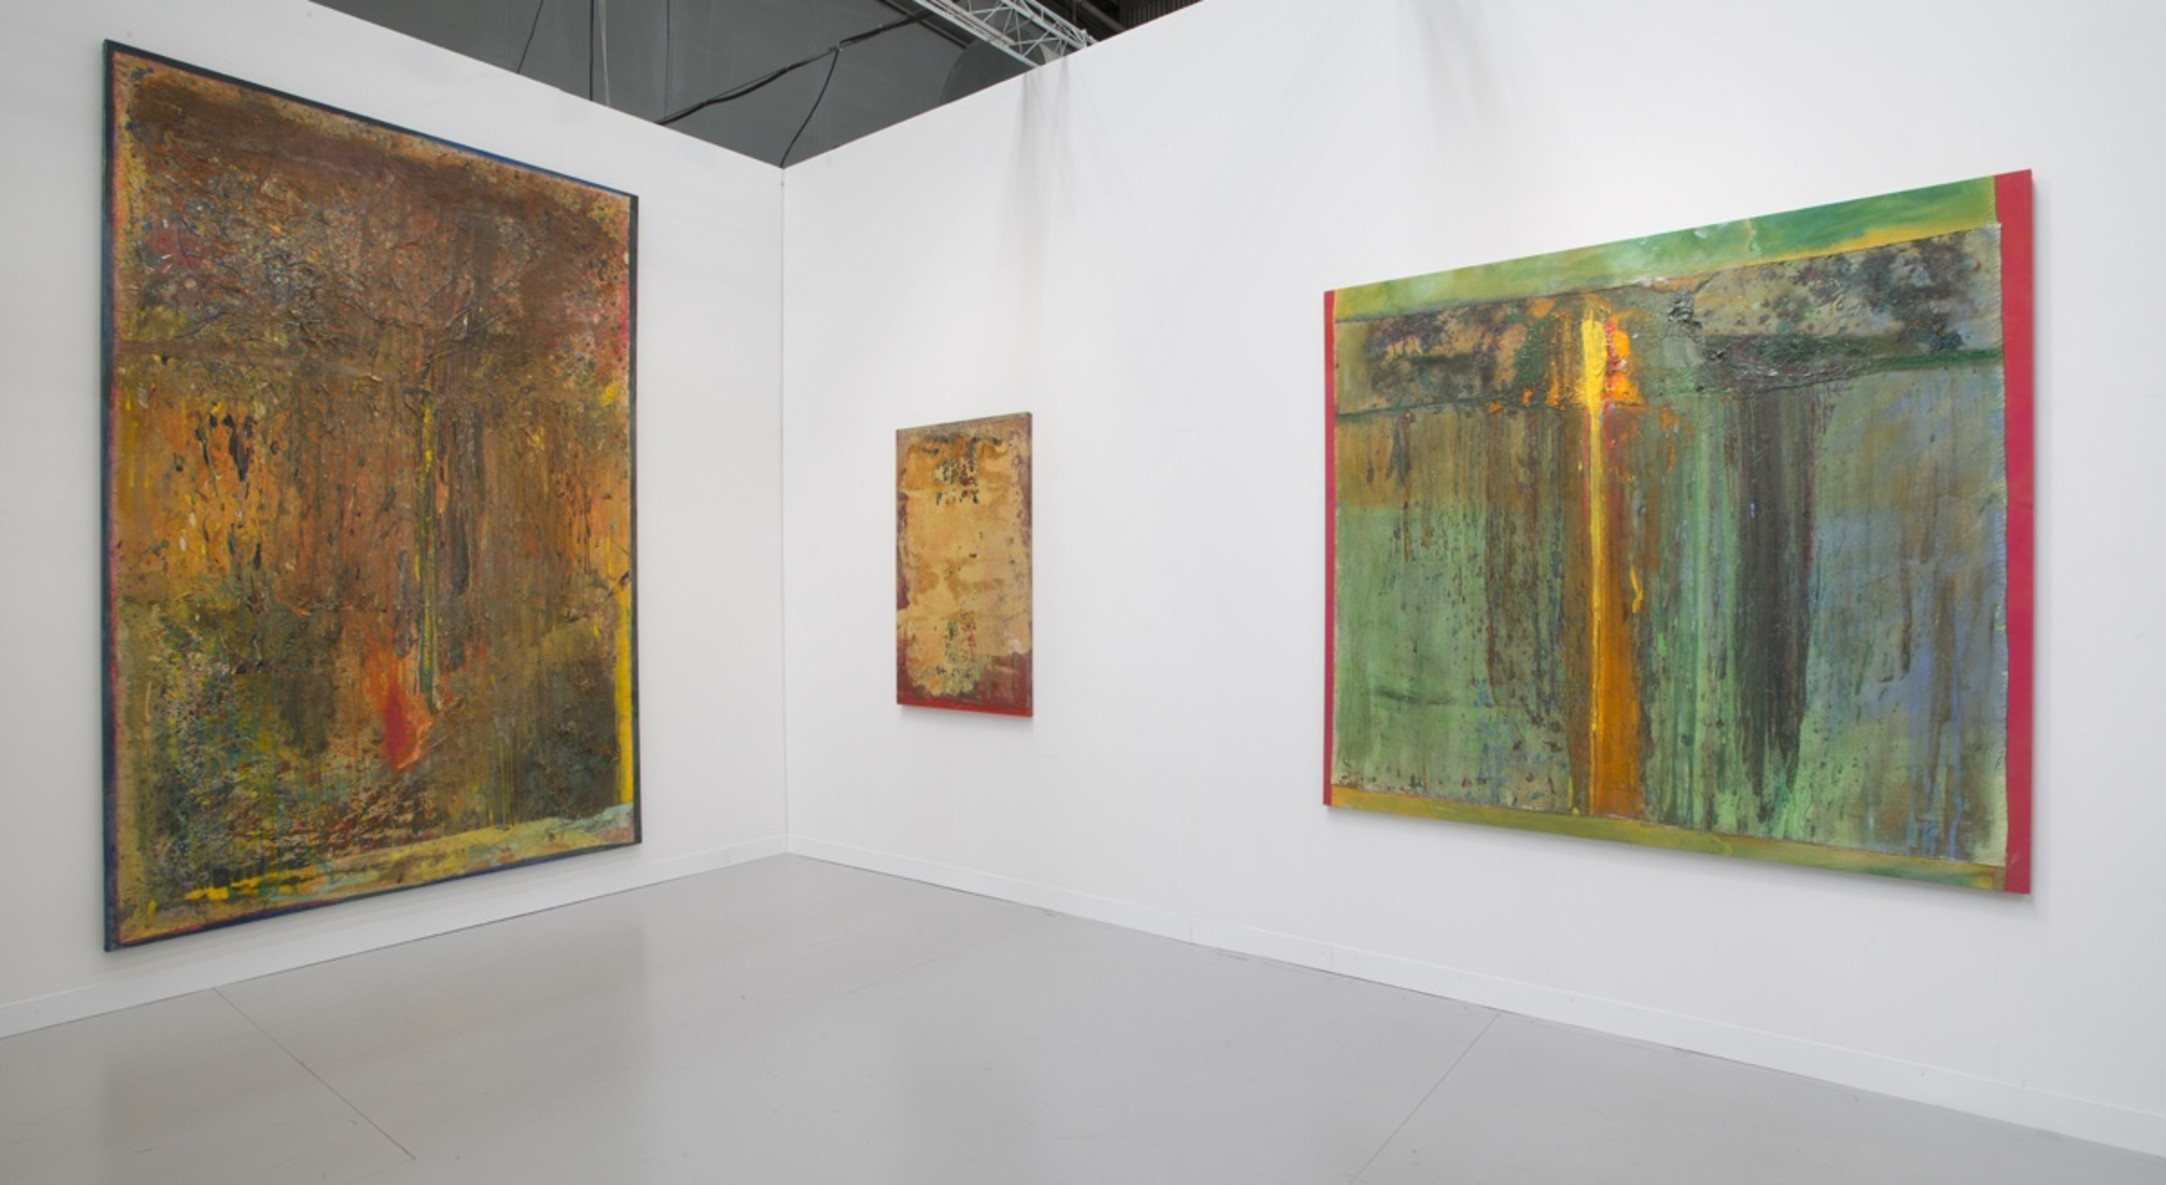 Installation view of Hales Gallery at the Armory Show NYC, 2014